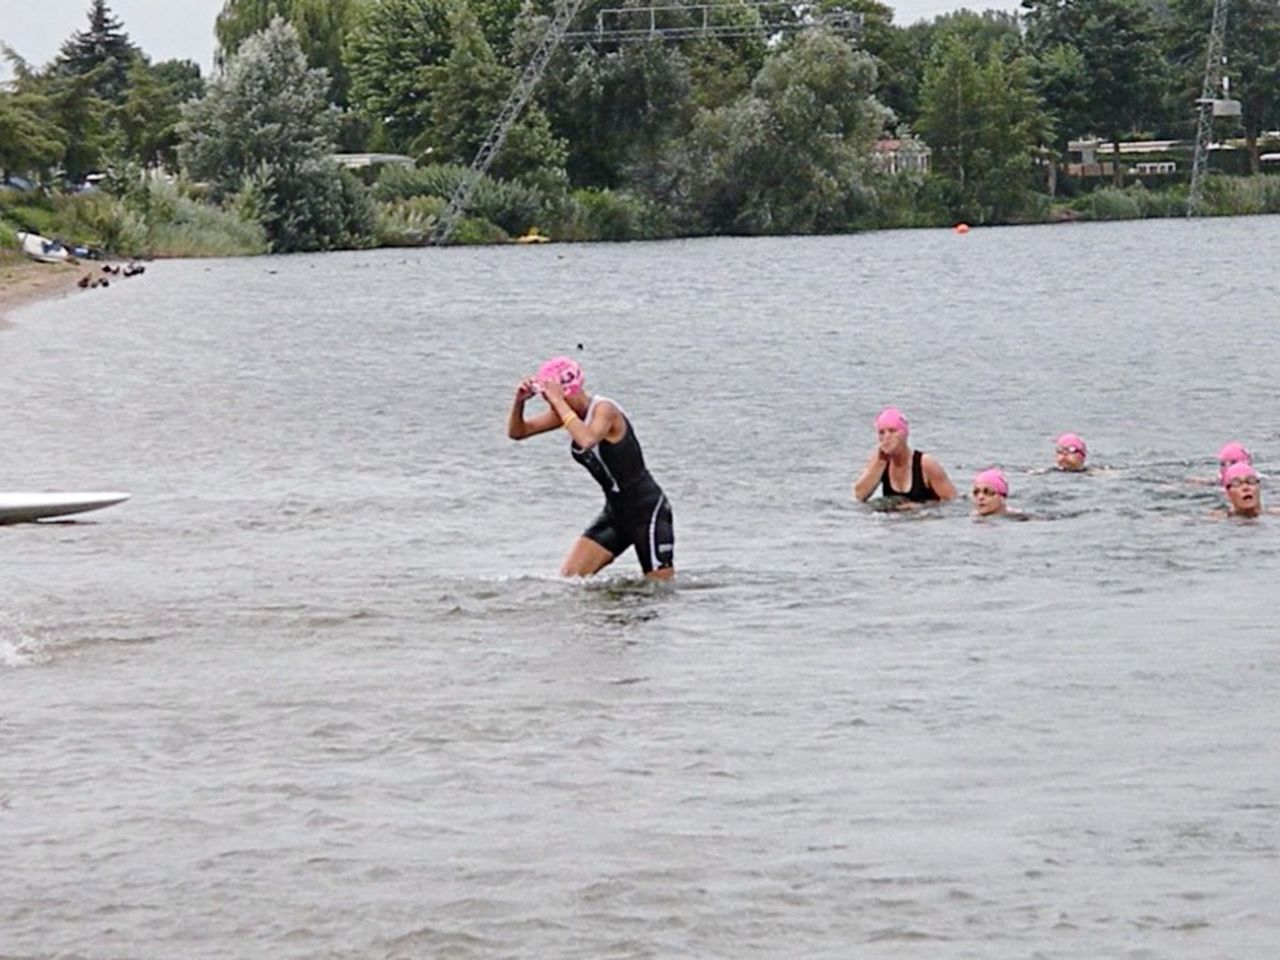 Woman Triathlon Beesd ,the Netherlands Pink Swim Caps Take The Challenge Never Give Up Swim Bike Run